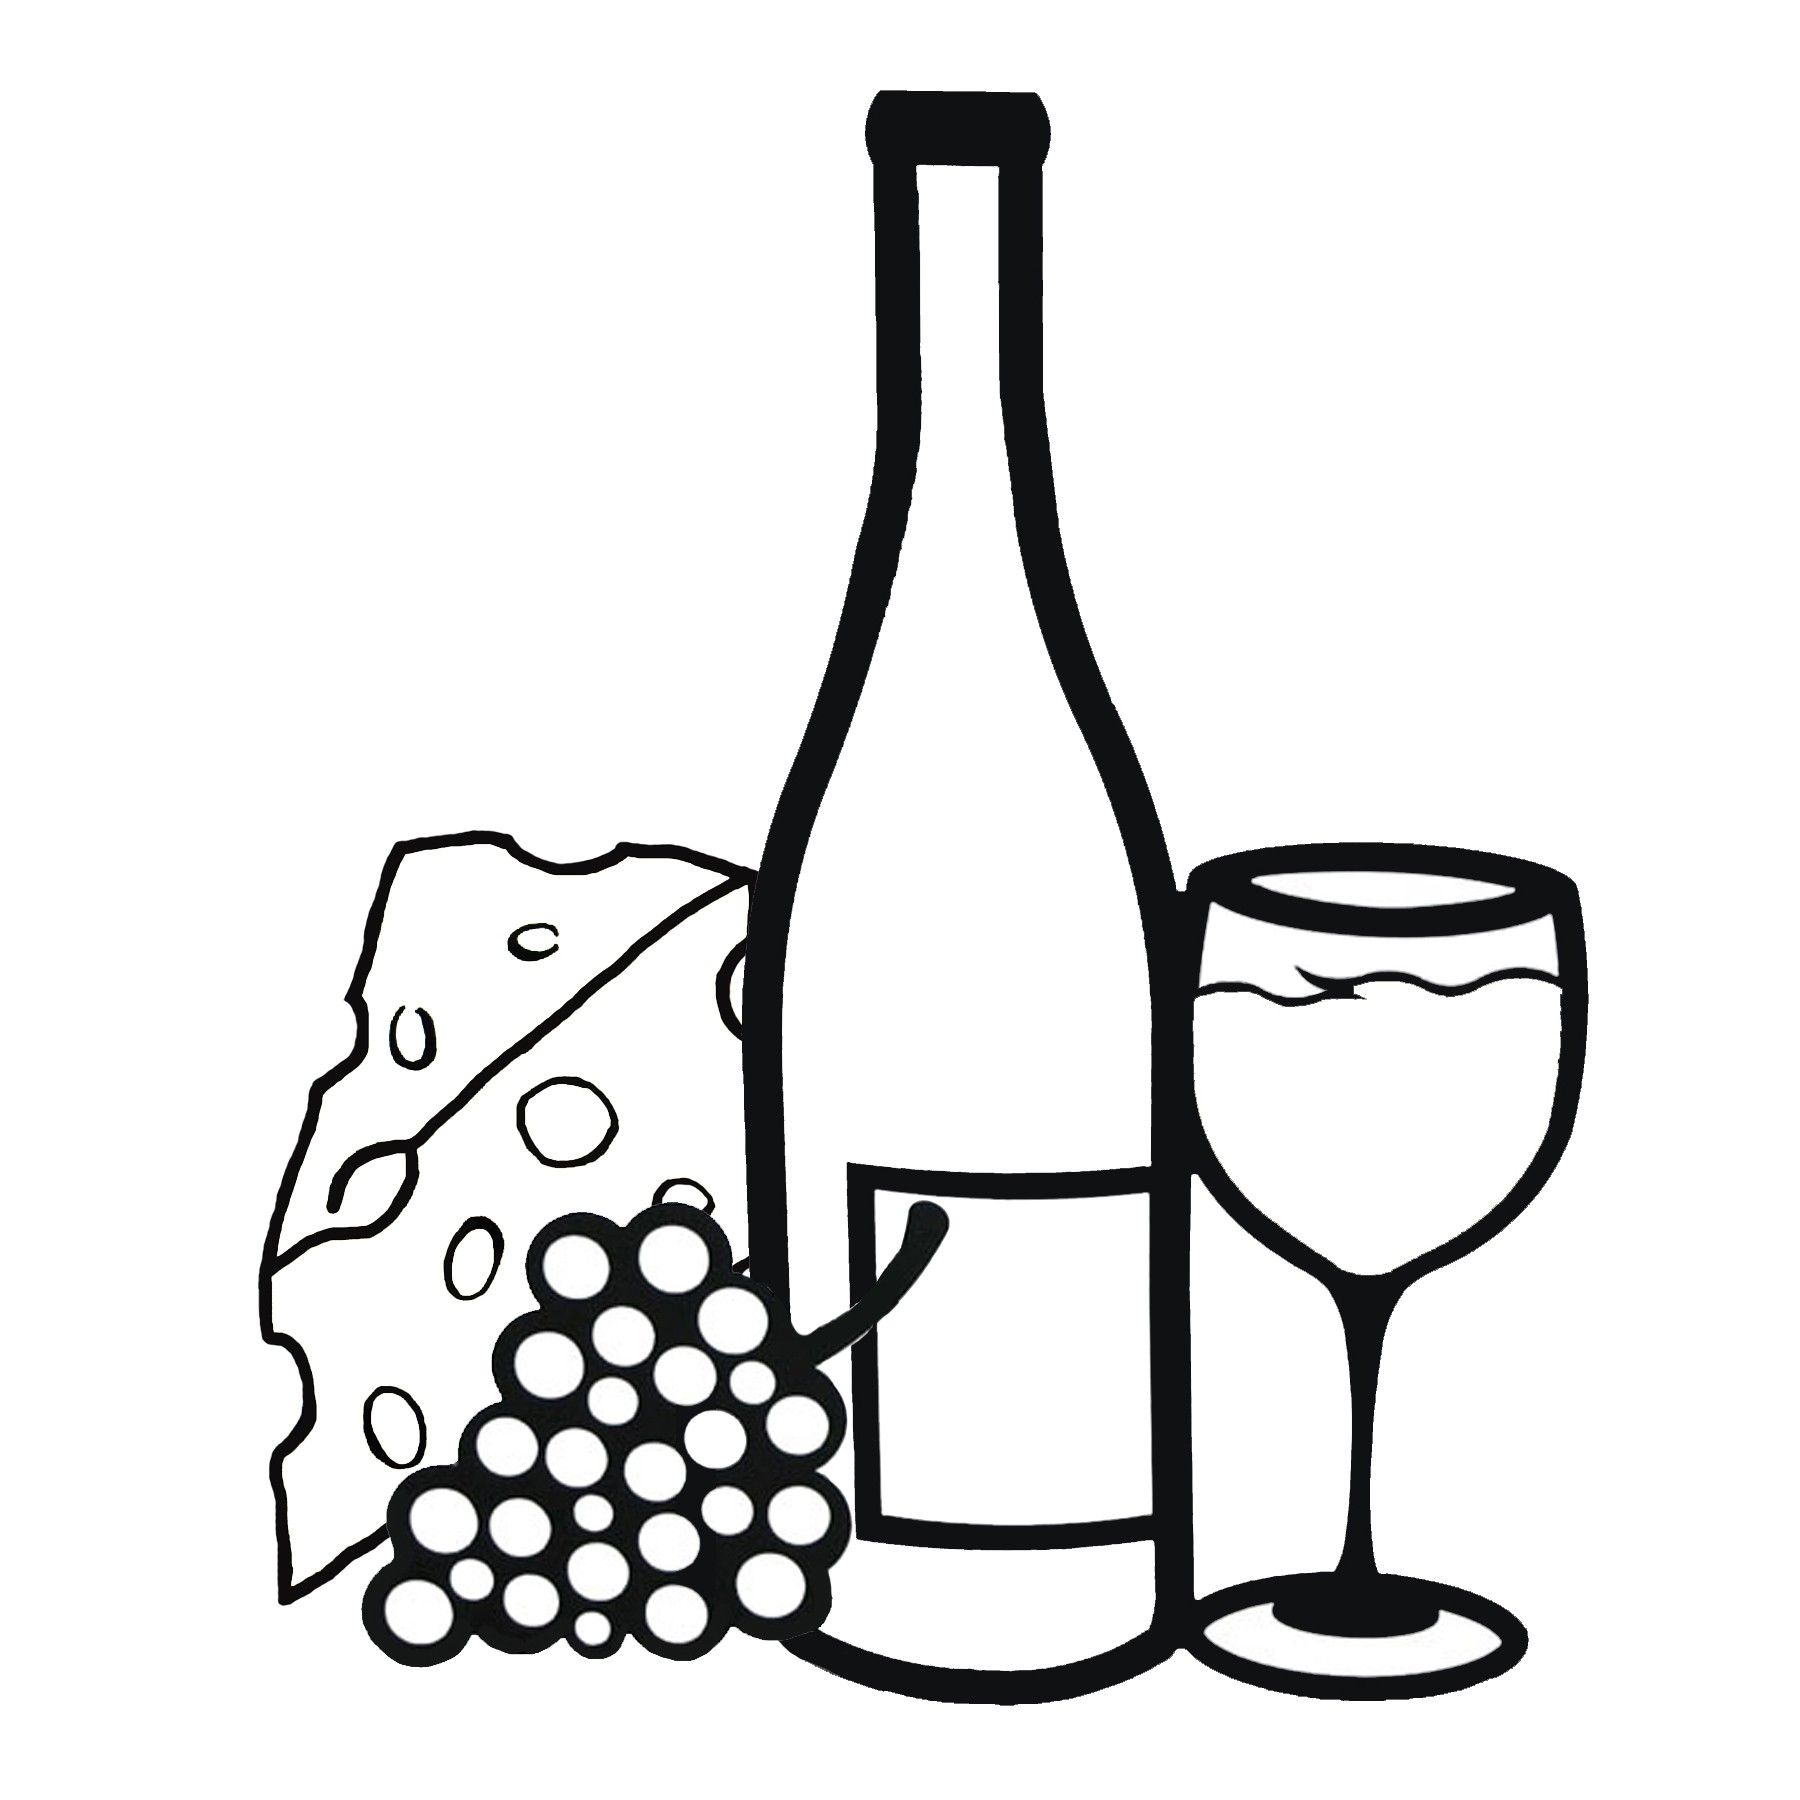 hight resolution of images for wine glass and grapes clipart